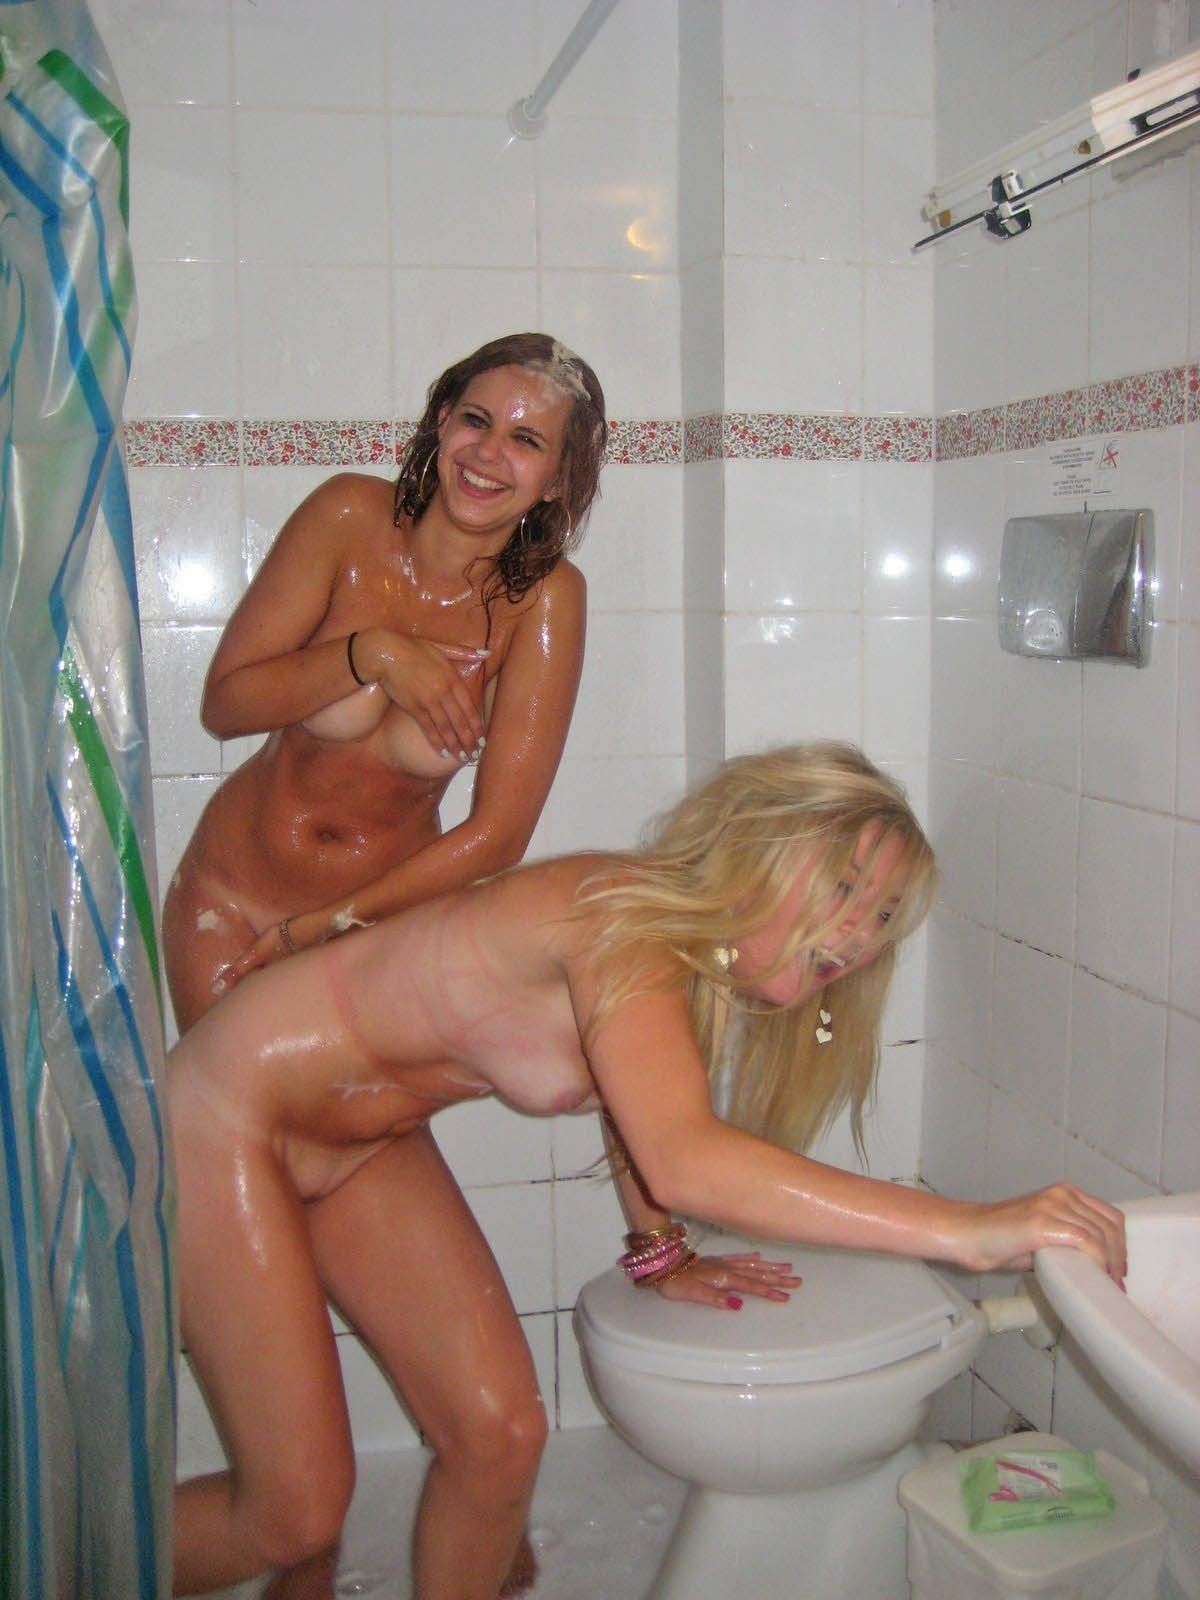 Gallery of girls fucking a pig